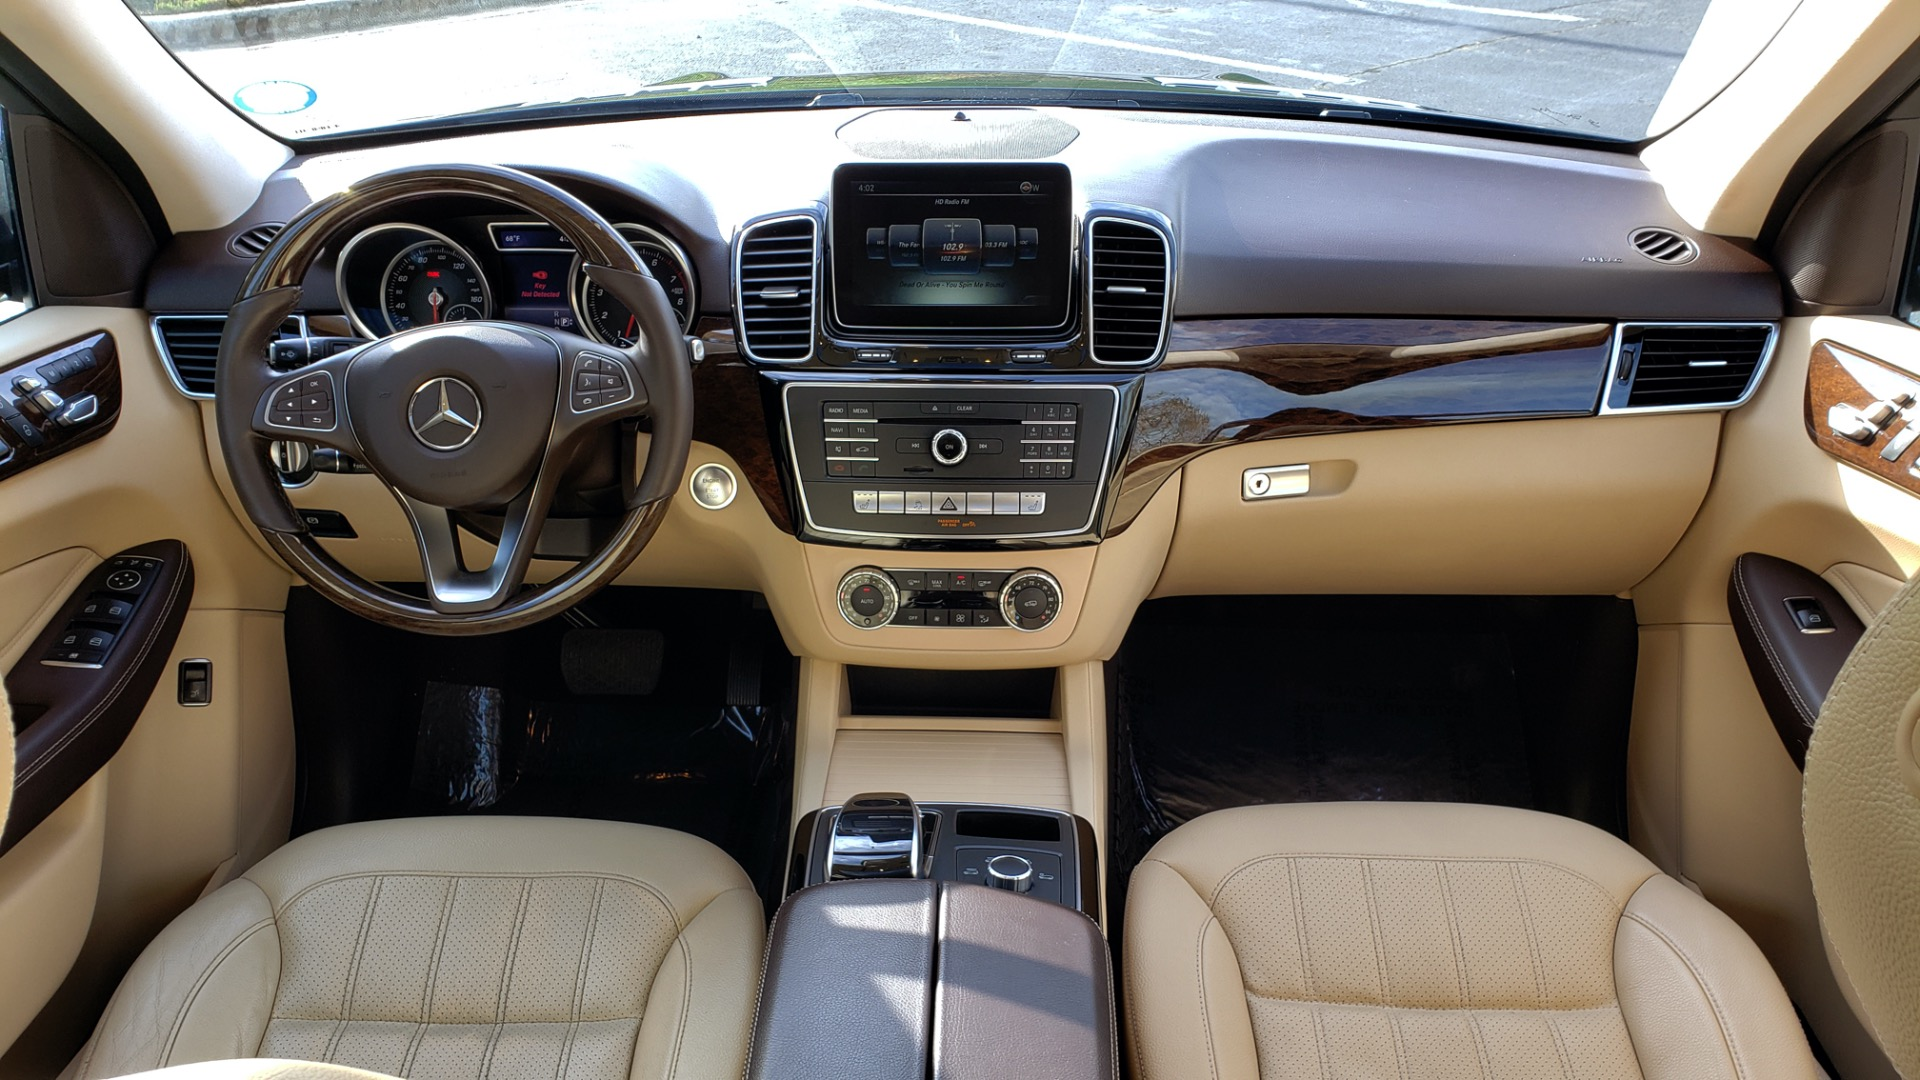 Used 2016 Mercedes-Benz GLE 350 PREMIUM / NAV / SUNROOF / BACK-UP CAMERA / LANE TRACKING for sale Sold at Formula Imports in Charlotte NC 28227 90